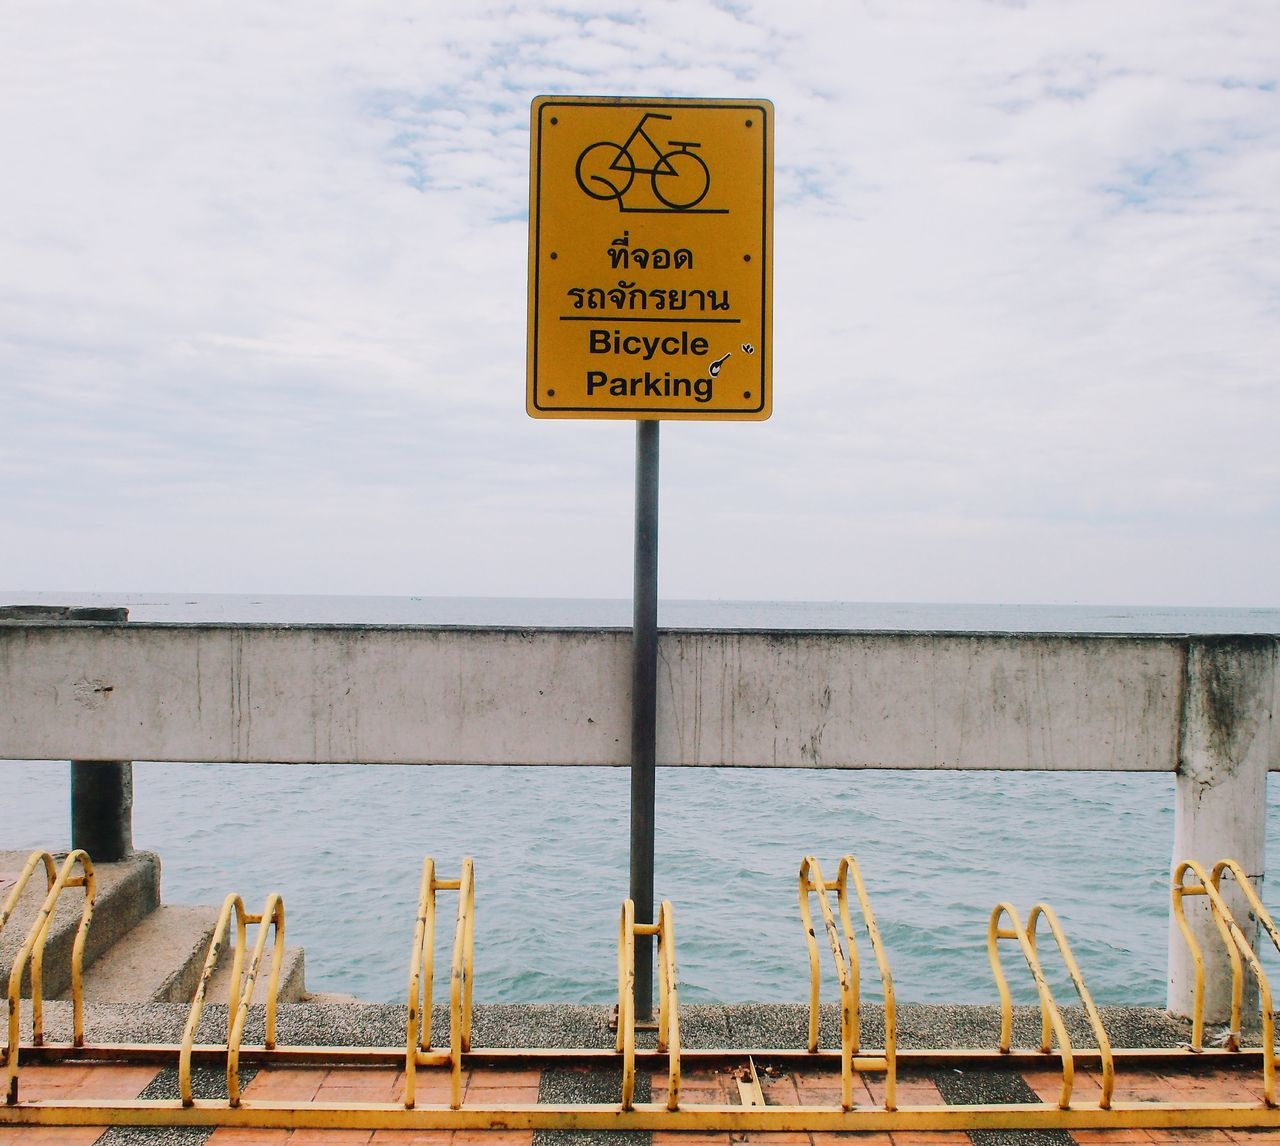 water, text, sea, warning sign, communication, sky, cloud - sky, horizon over water, no people, day, outdoors, nature, yellow, placard